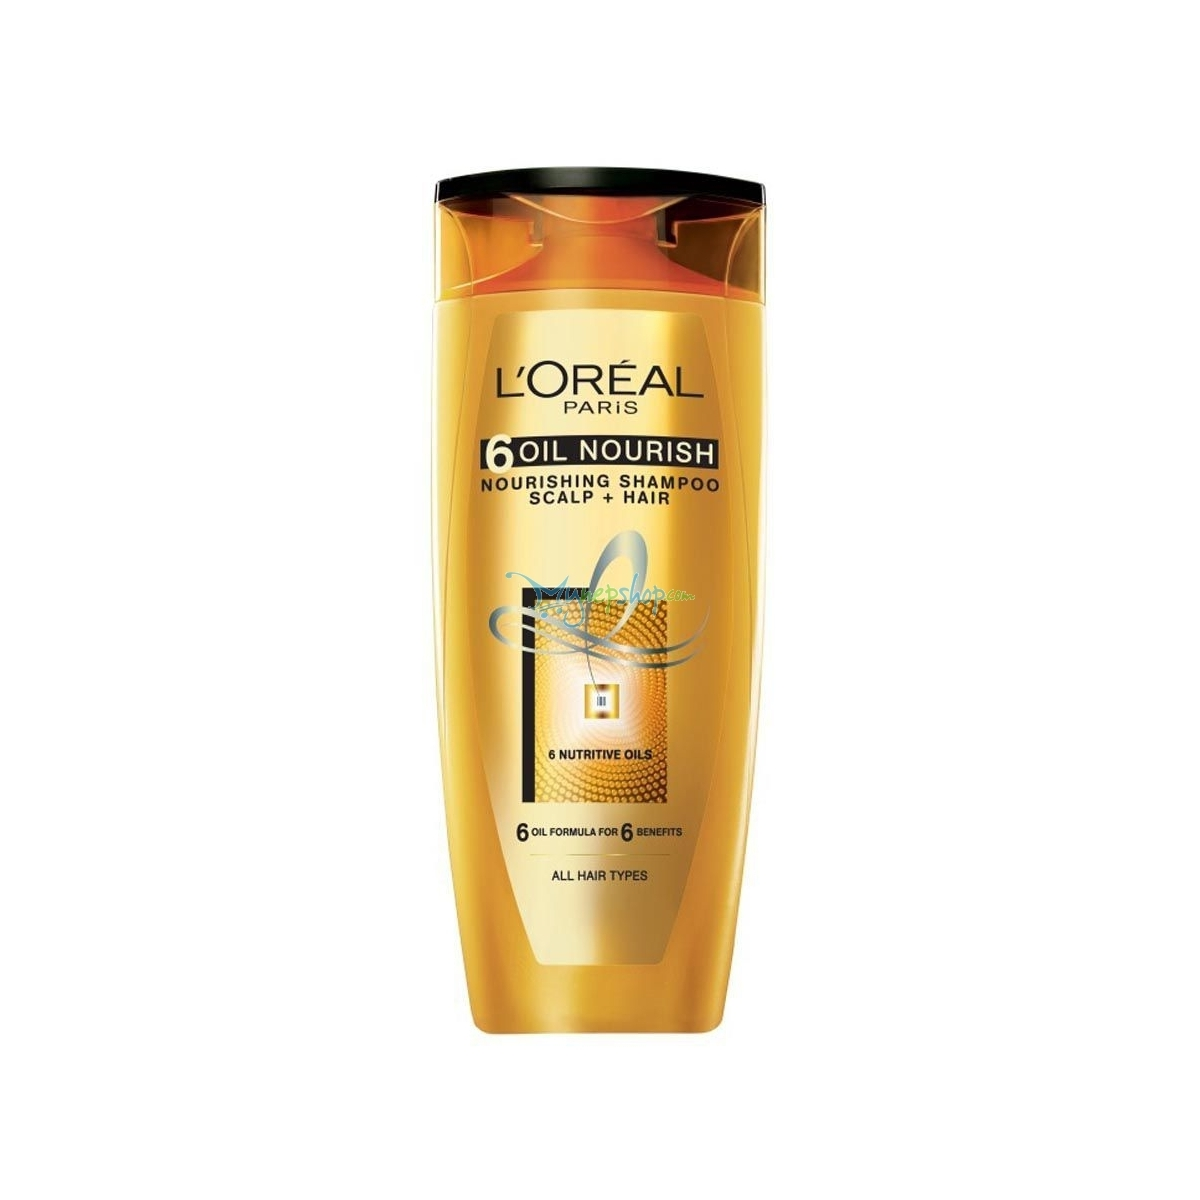 L'Oreal Paris 6 Oil Nourish Shampoo-Lathers nicely-By riya_neema